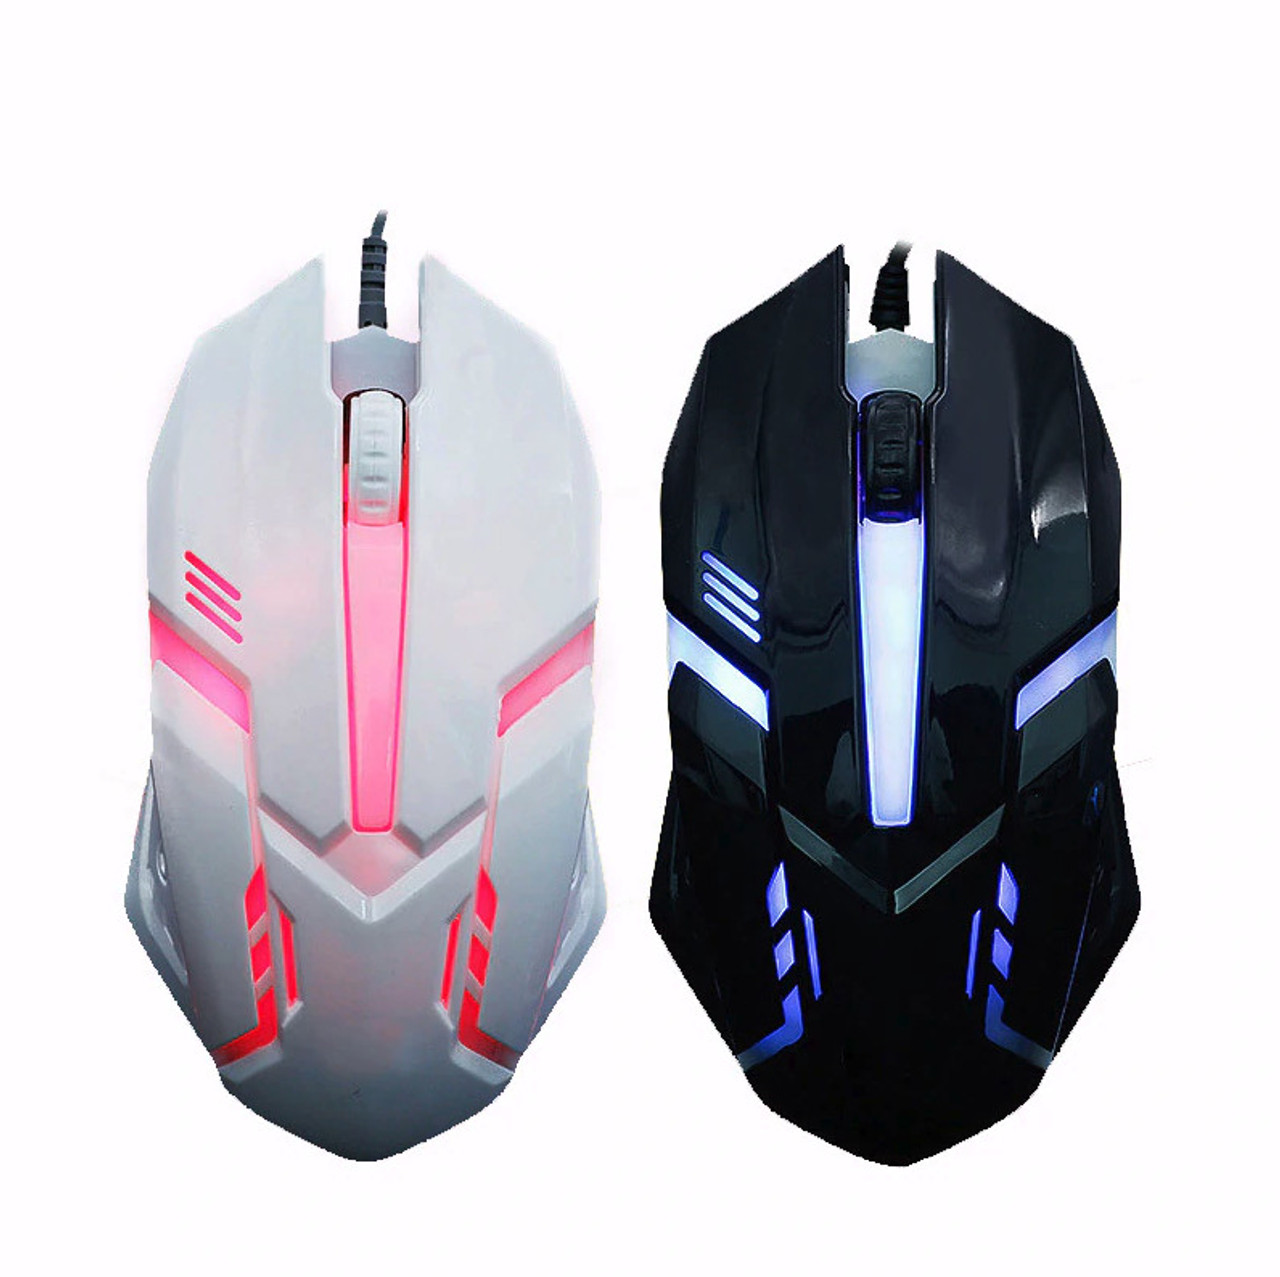 Gaming Mouse 3 Button USB Wired LED Breathing Fire Button 3200 DPI Laptop PC USA